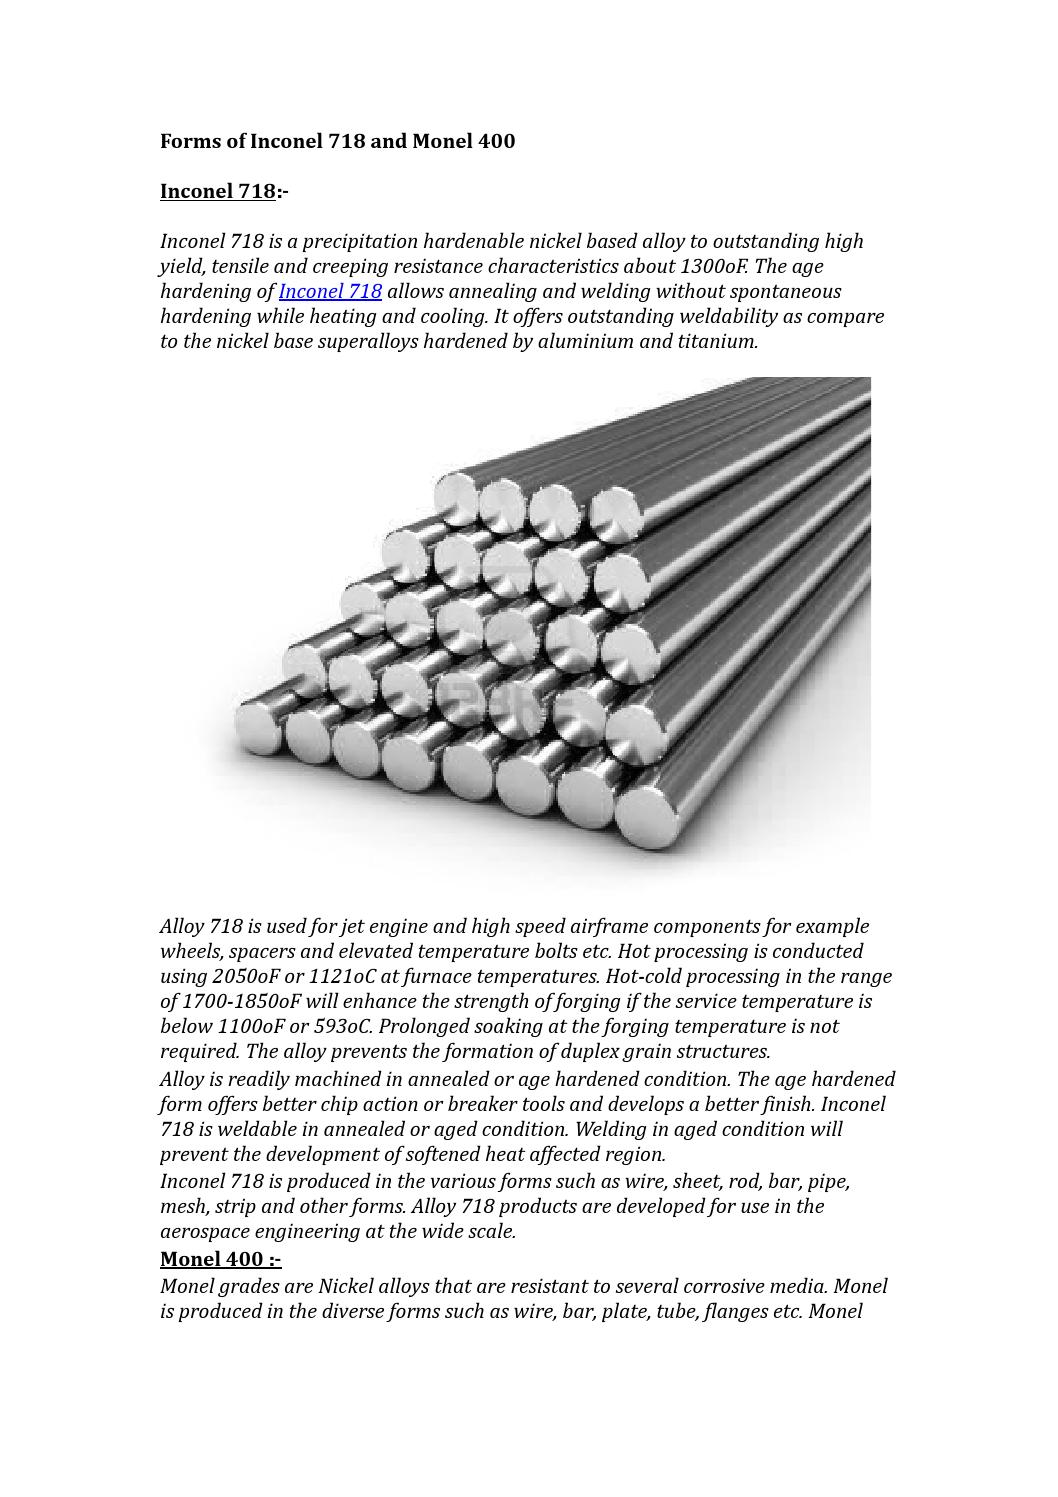 Forms of inconel 718 and monel 400 by heanjiametals - issuu